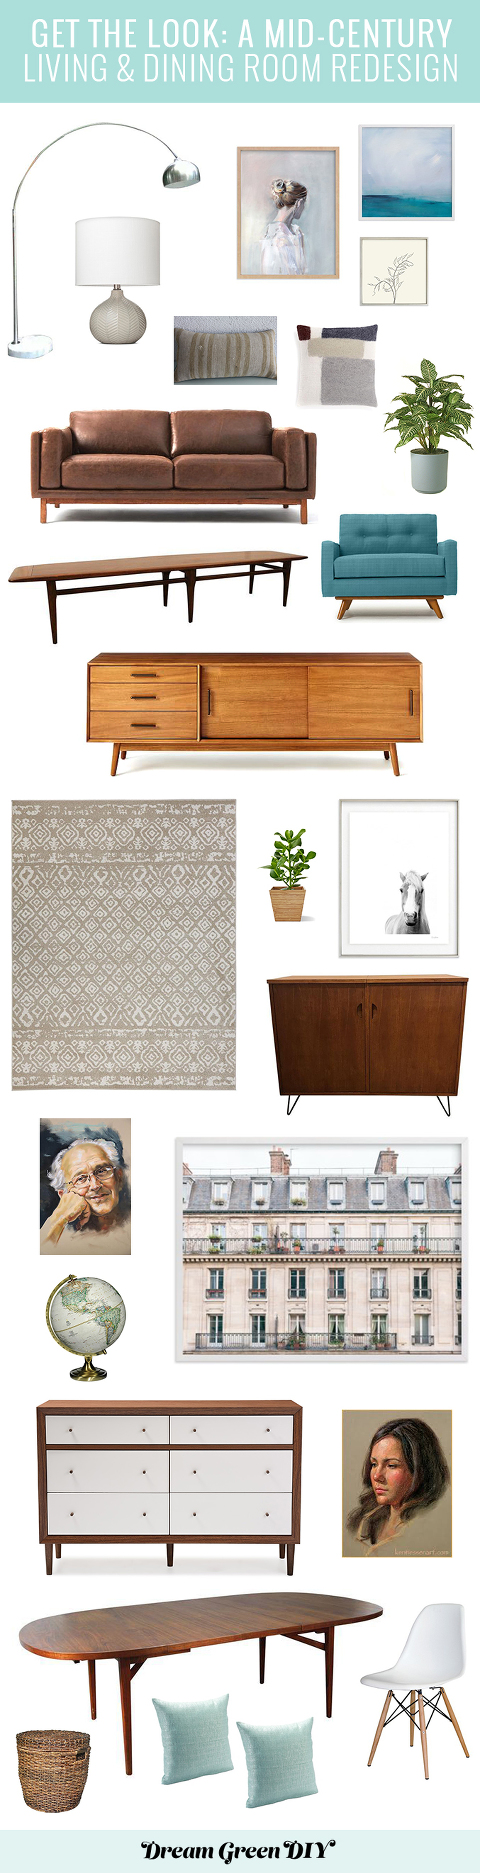 Plans For Our Mid-Century Living & Dining Room Redesign | dreamgreendiy.com + @minted